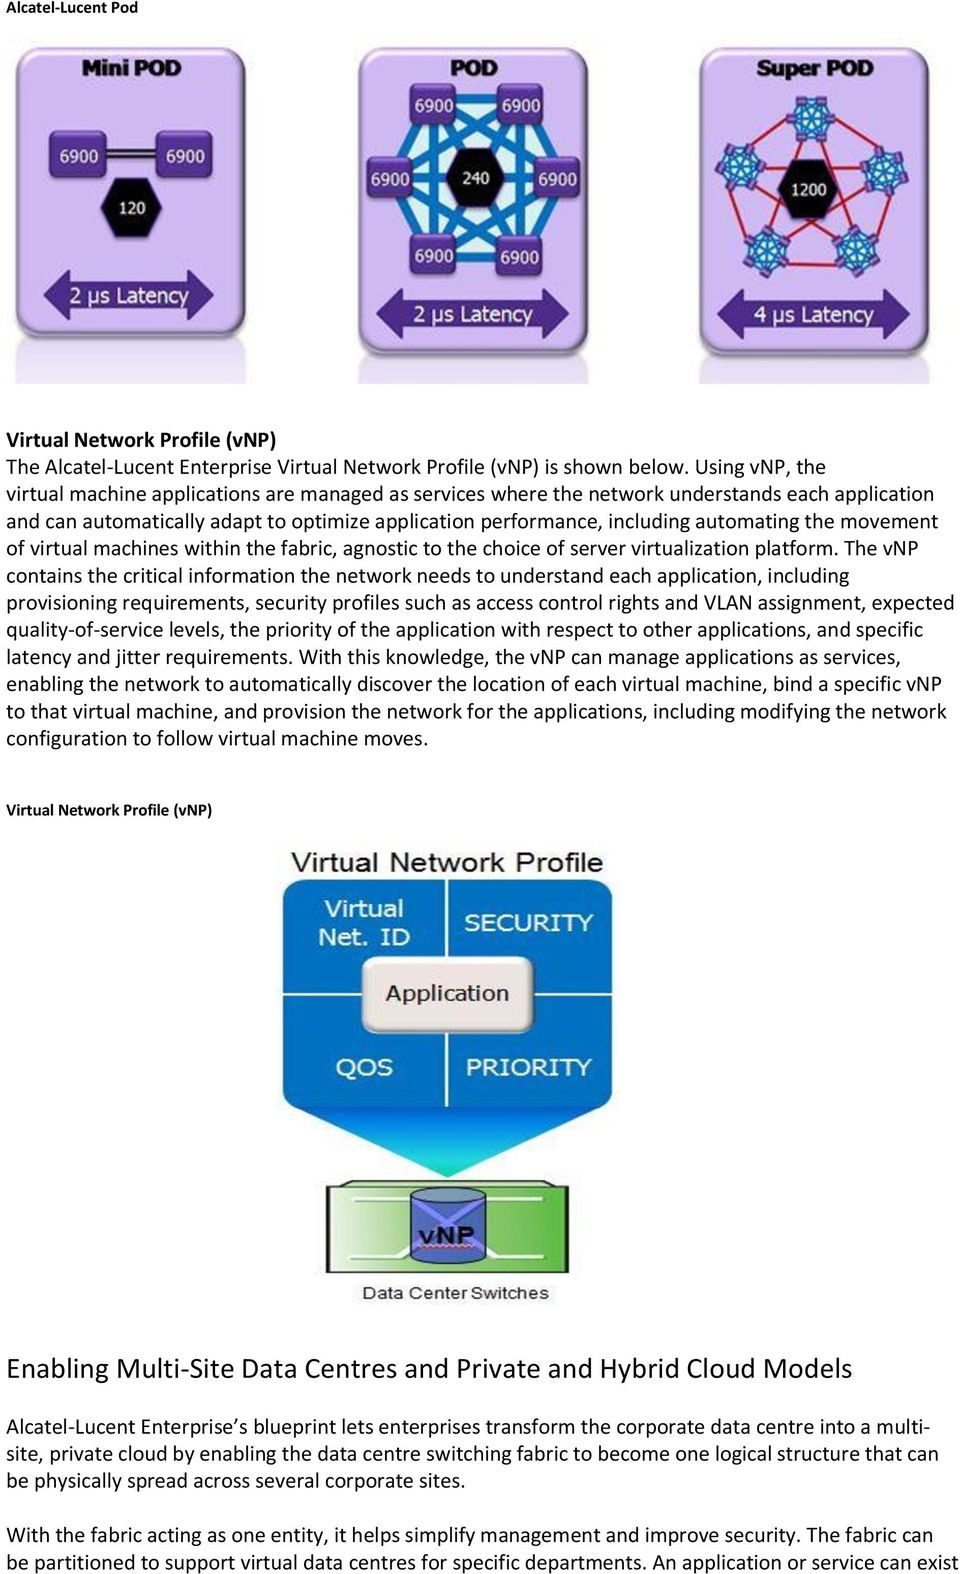 automating the movement of virtual machines within the fabric, agnostic to the choice of server virtualization platform.